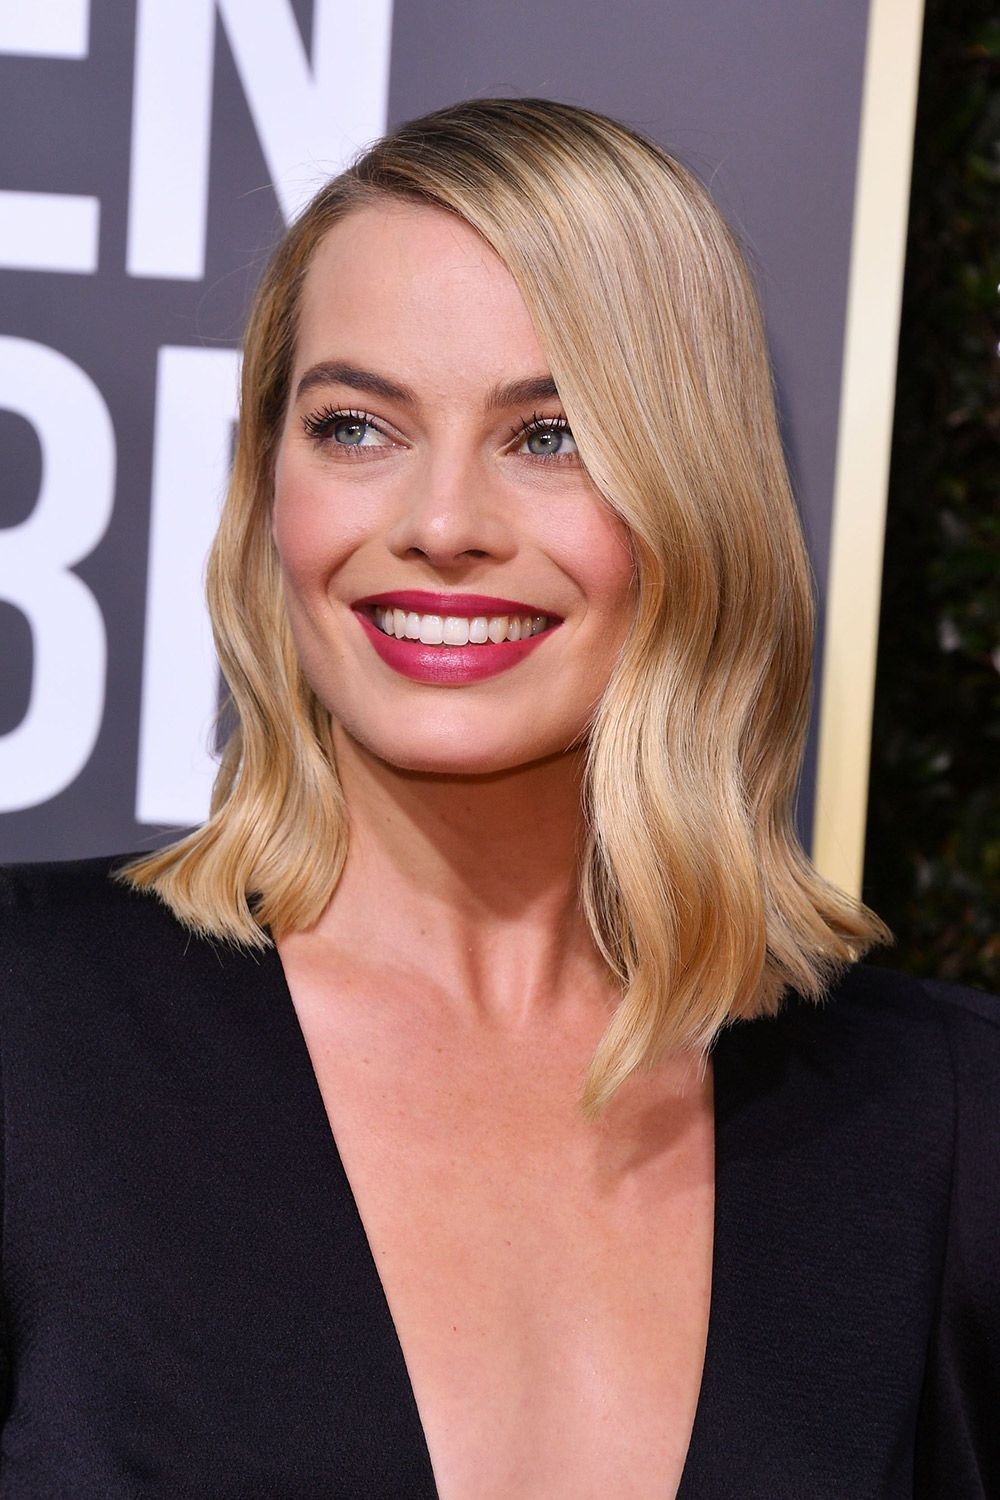 80 Best Long Bob Haircut and Hairstyle Ideas of 2020